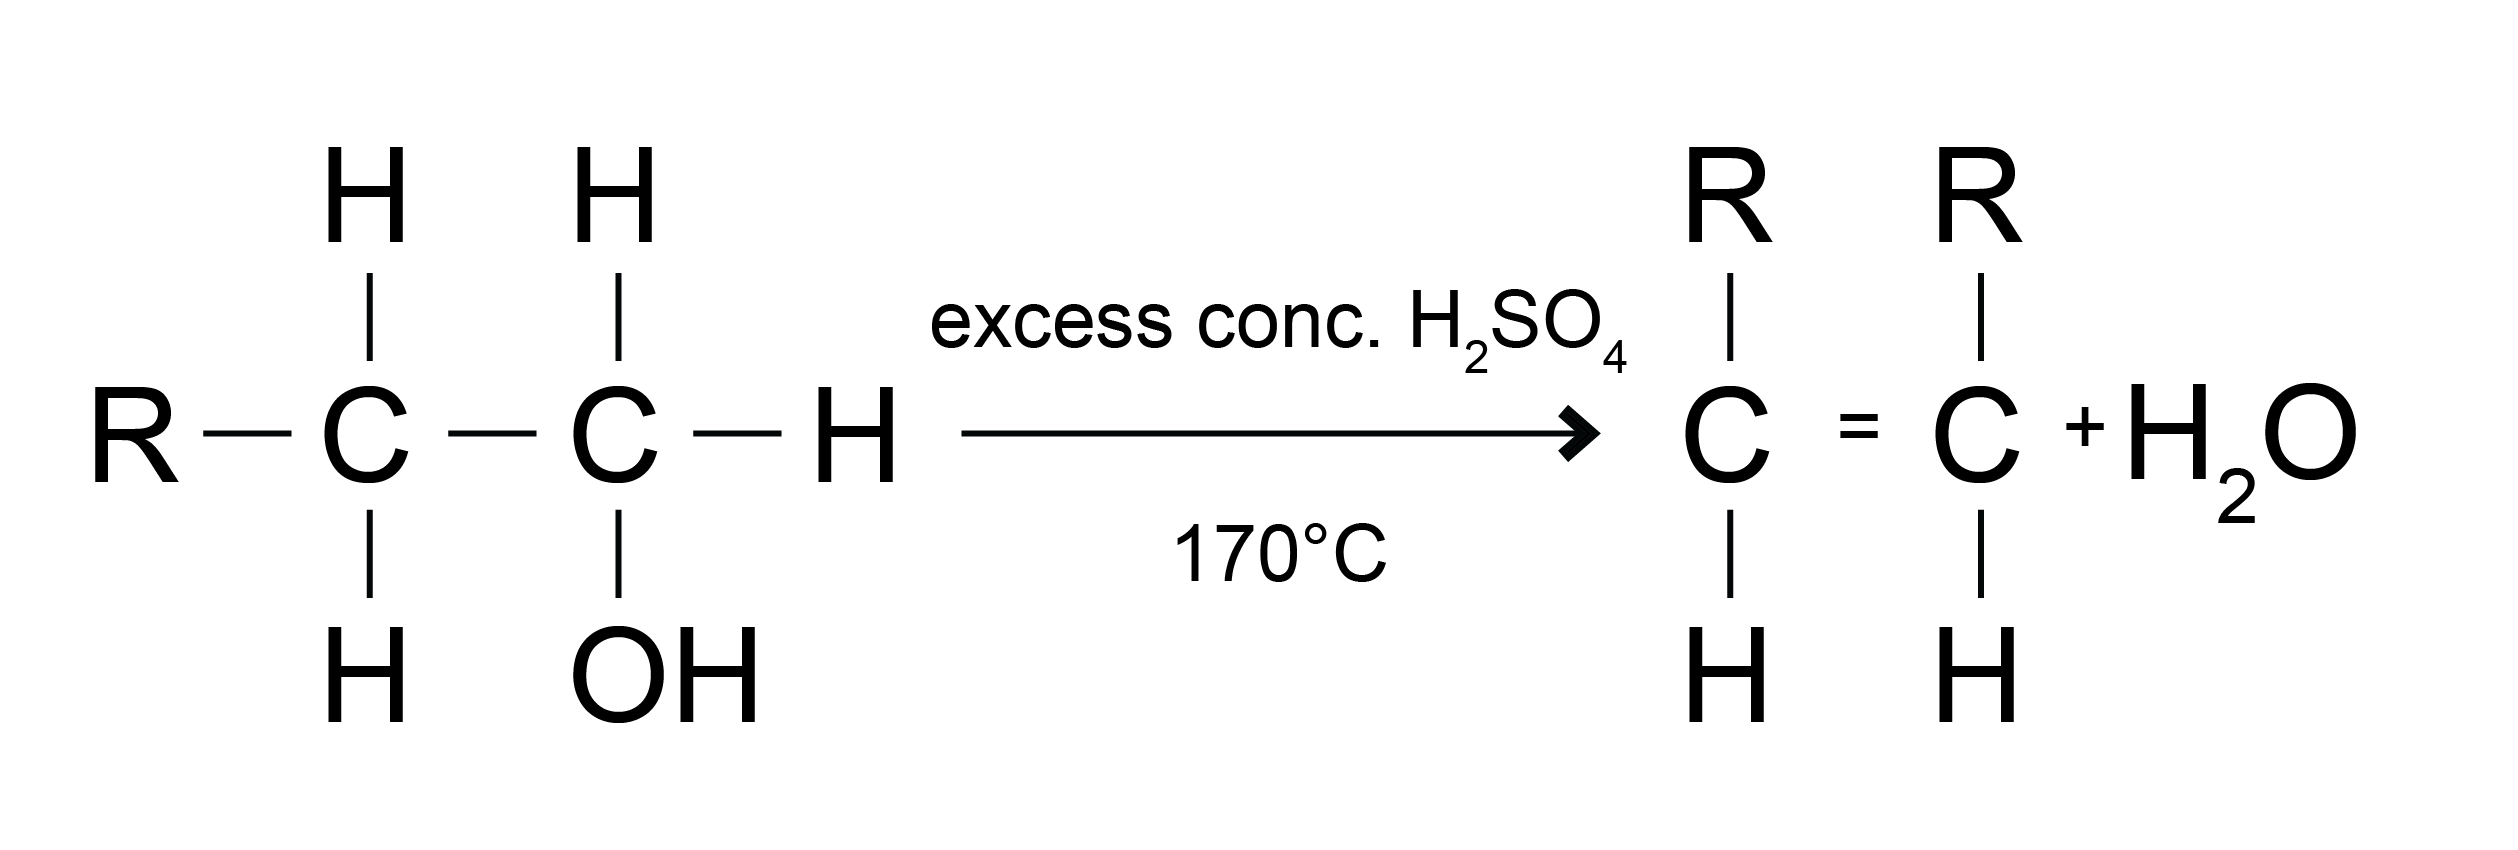 reagents-and-conditions